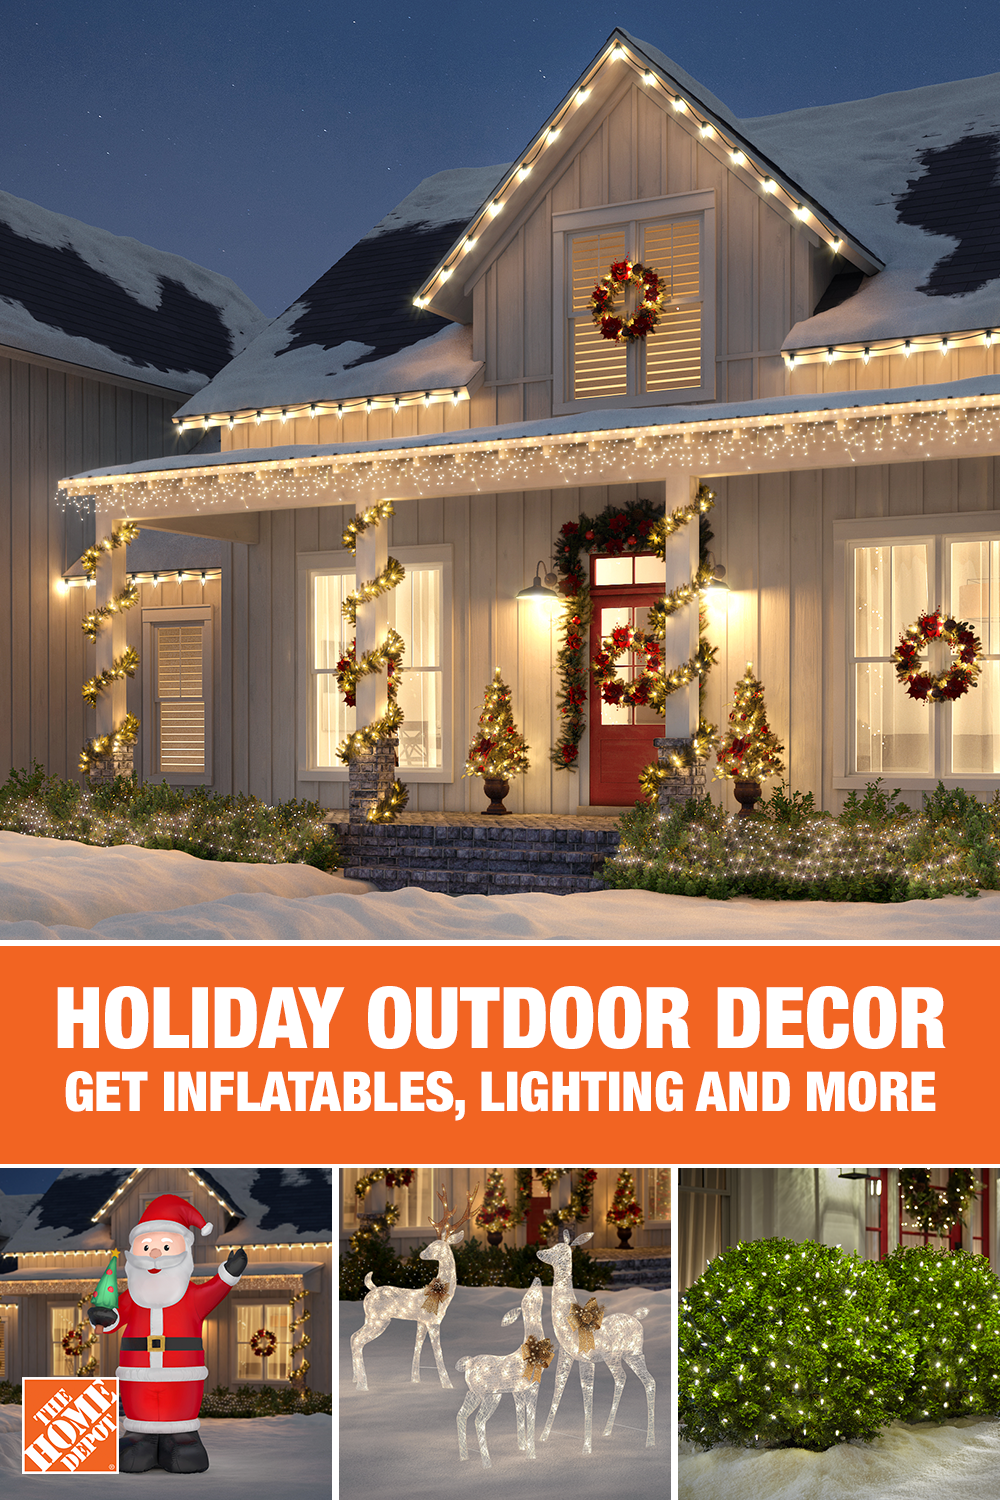 Shop Festive Outdoor Decor At The Home Depot Deck Your Yard With Holiday Cheer And Outdoor Outdoor Holiday Decor Exterior Christmas Lights Outdoor Christmas